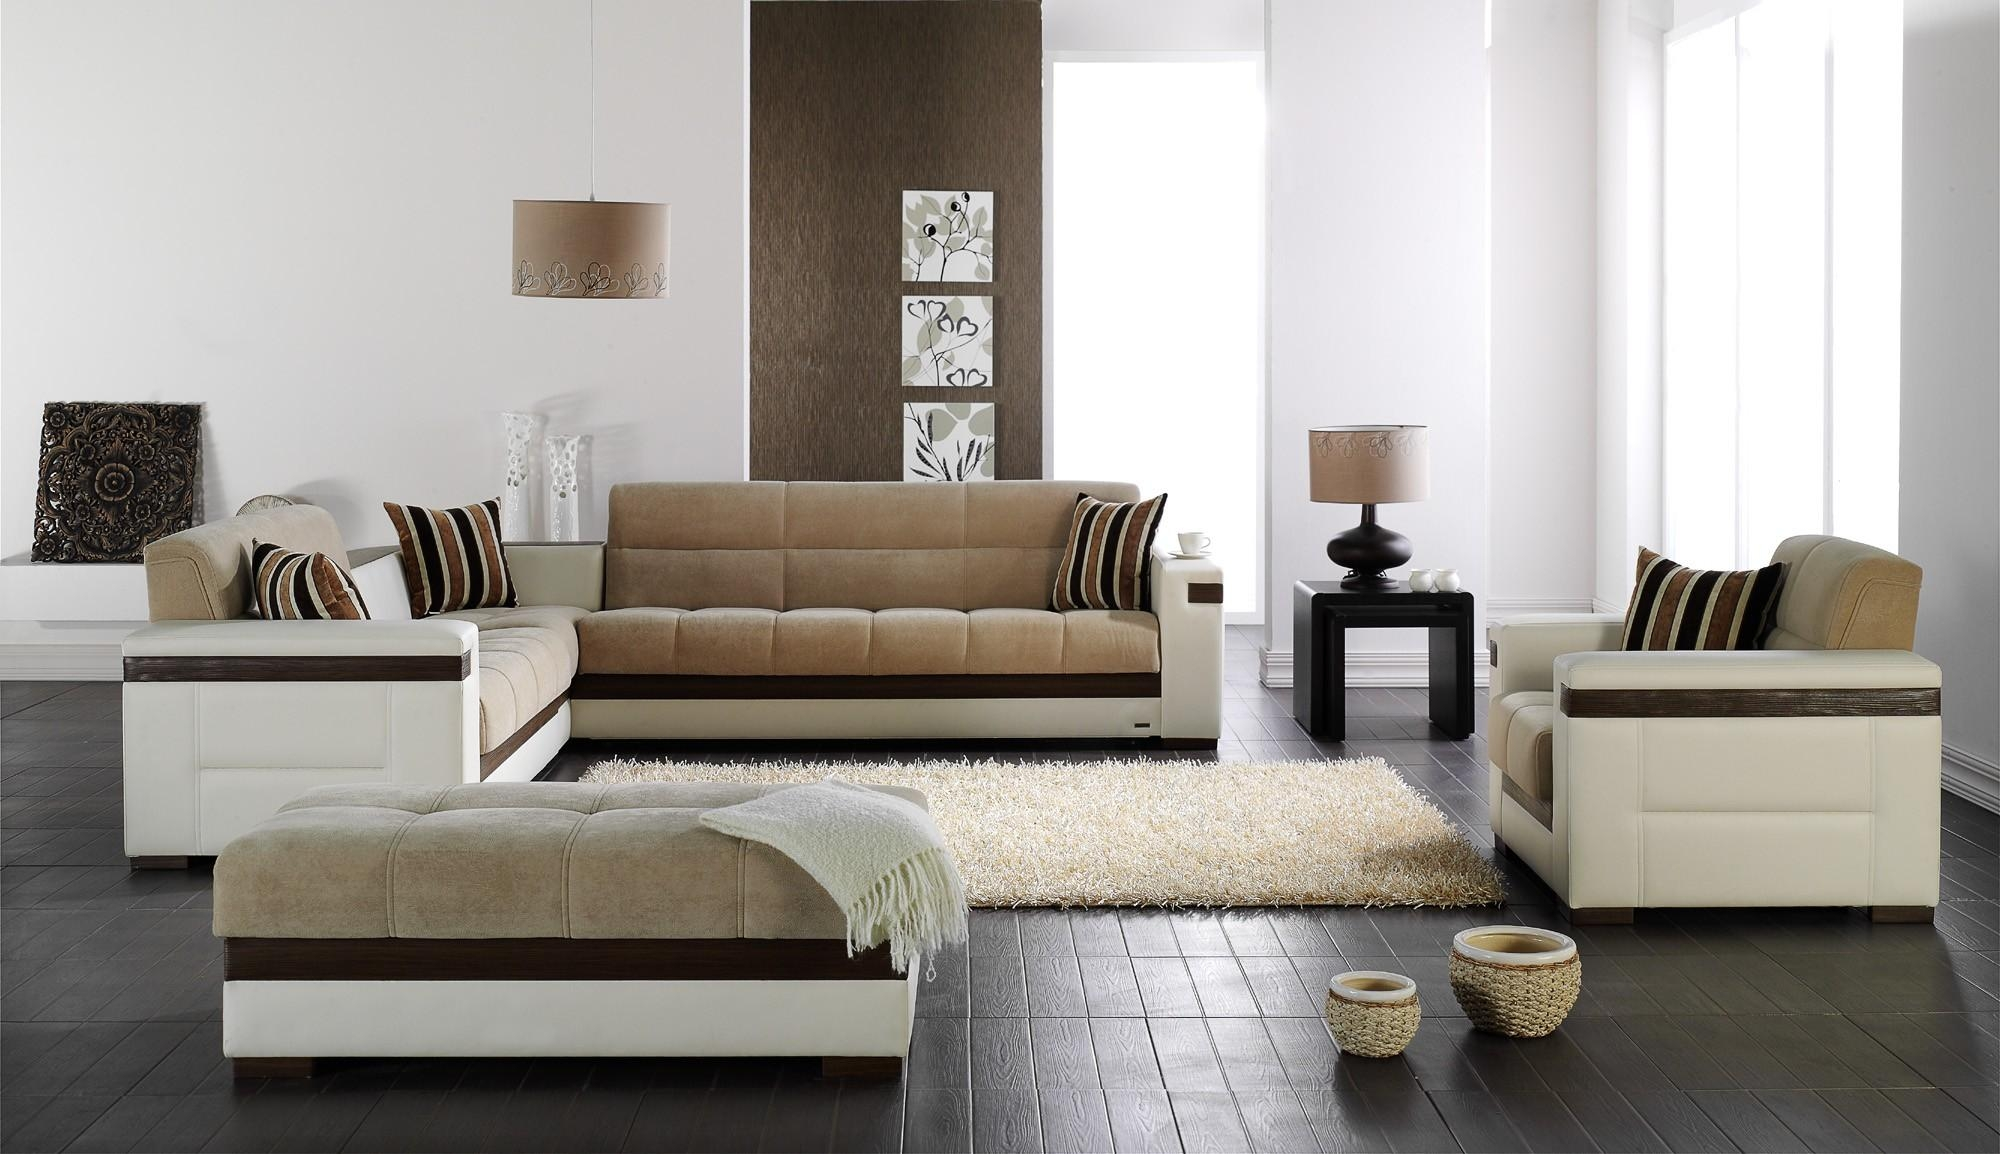 Moon Sectional Sofa Sleeper Intended For European Leather Sofas (Image 14 of 21)